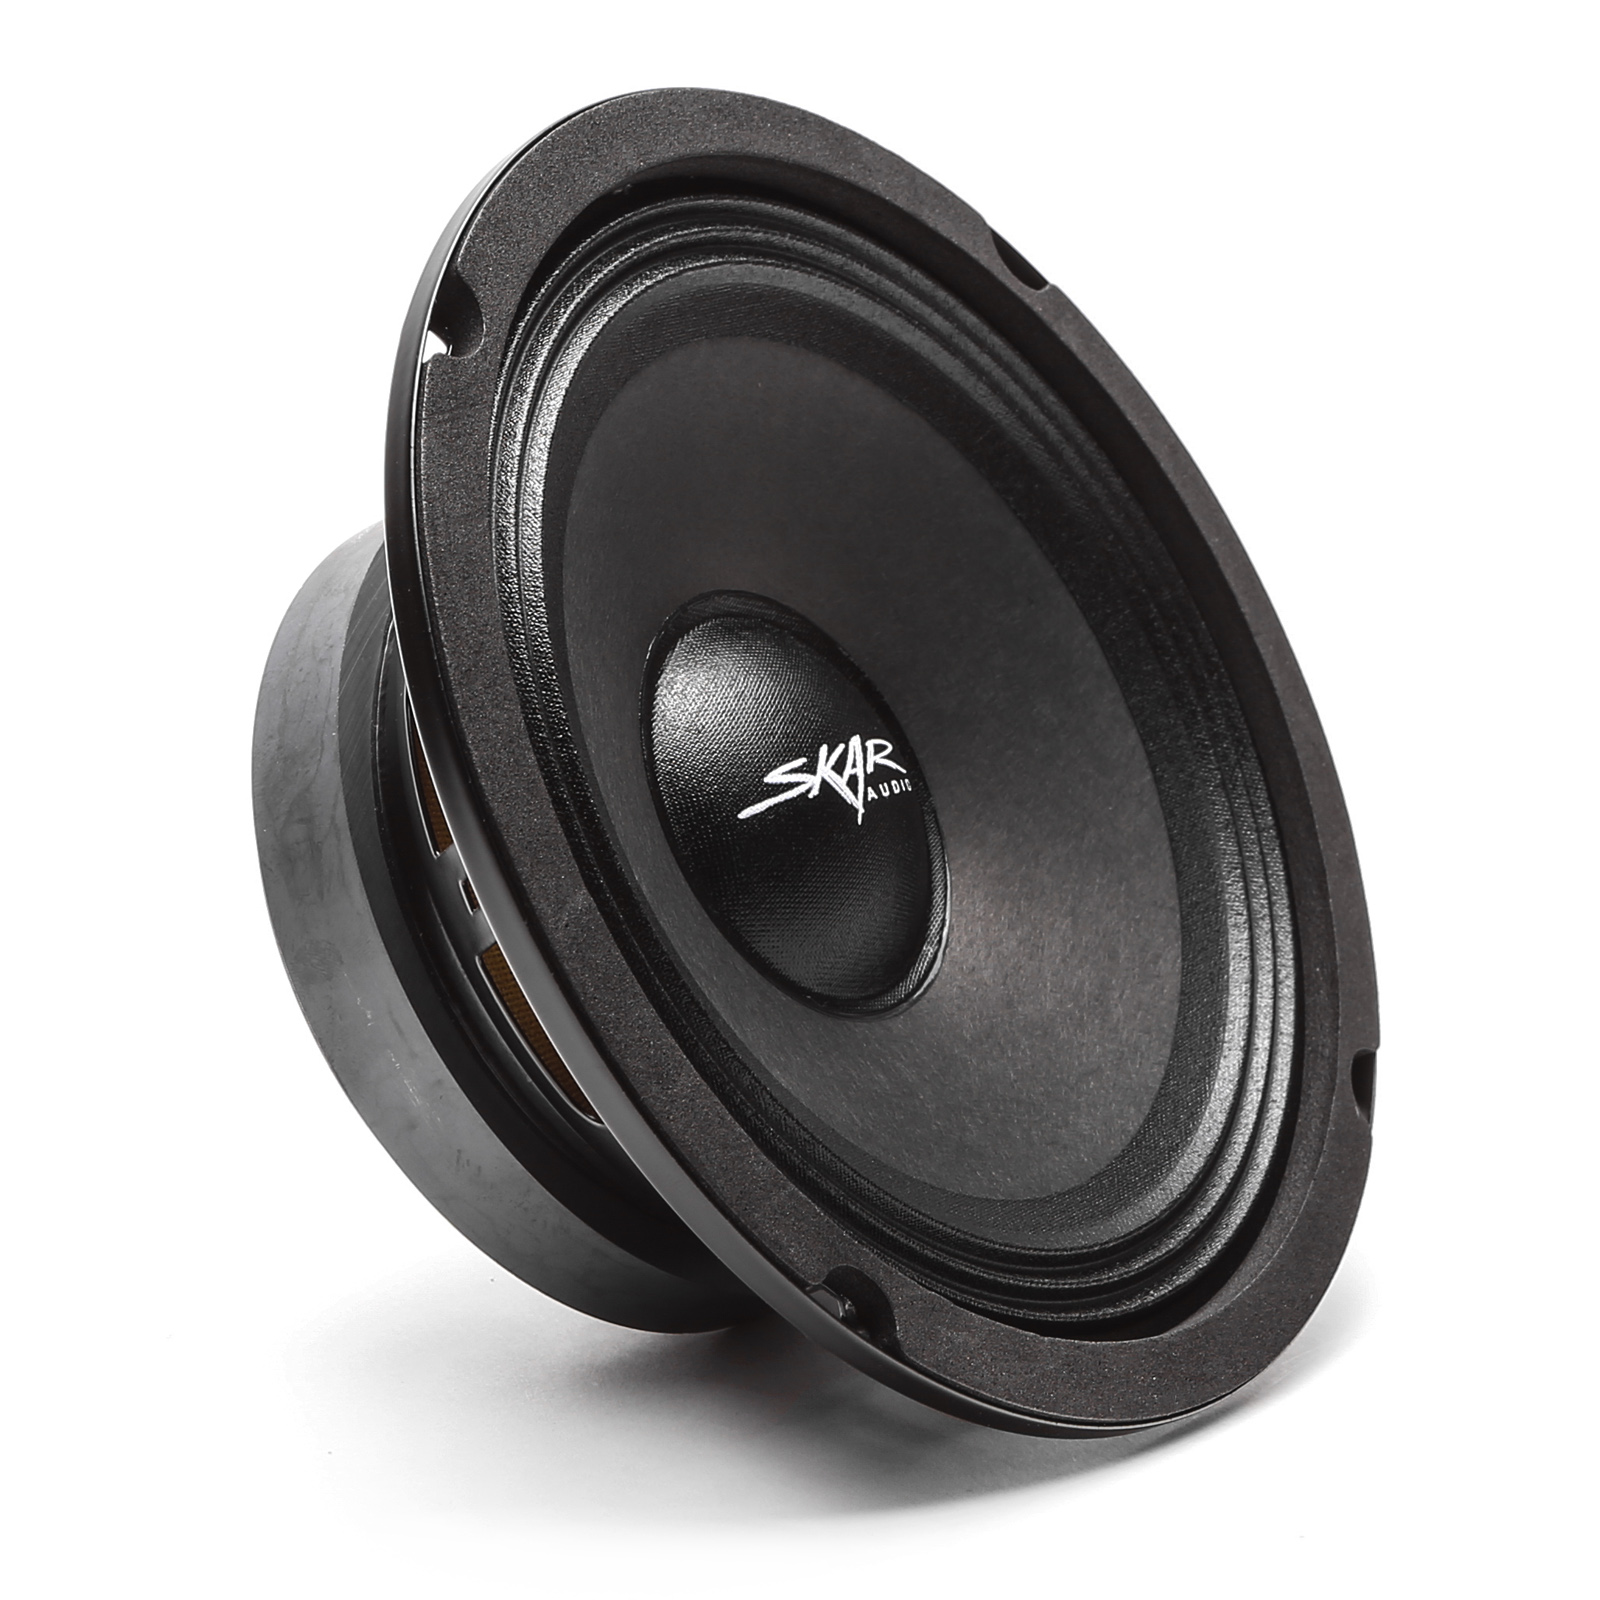 62ab53a8a Details about NEW SKAR AUDIO FSX65-4 300-WATT SINGLE 6.5-INCH 4 OHM MID- RANGE LOUDSPEAKER